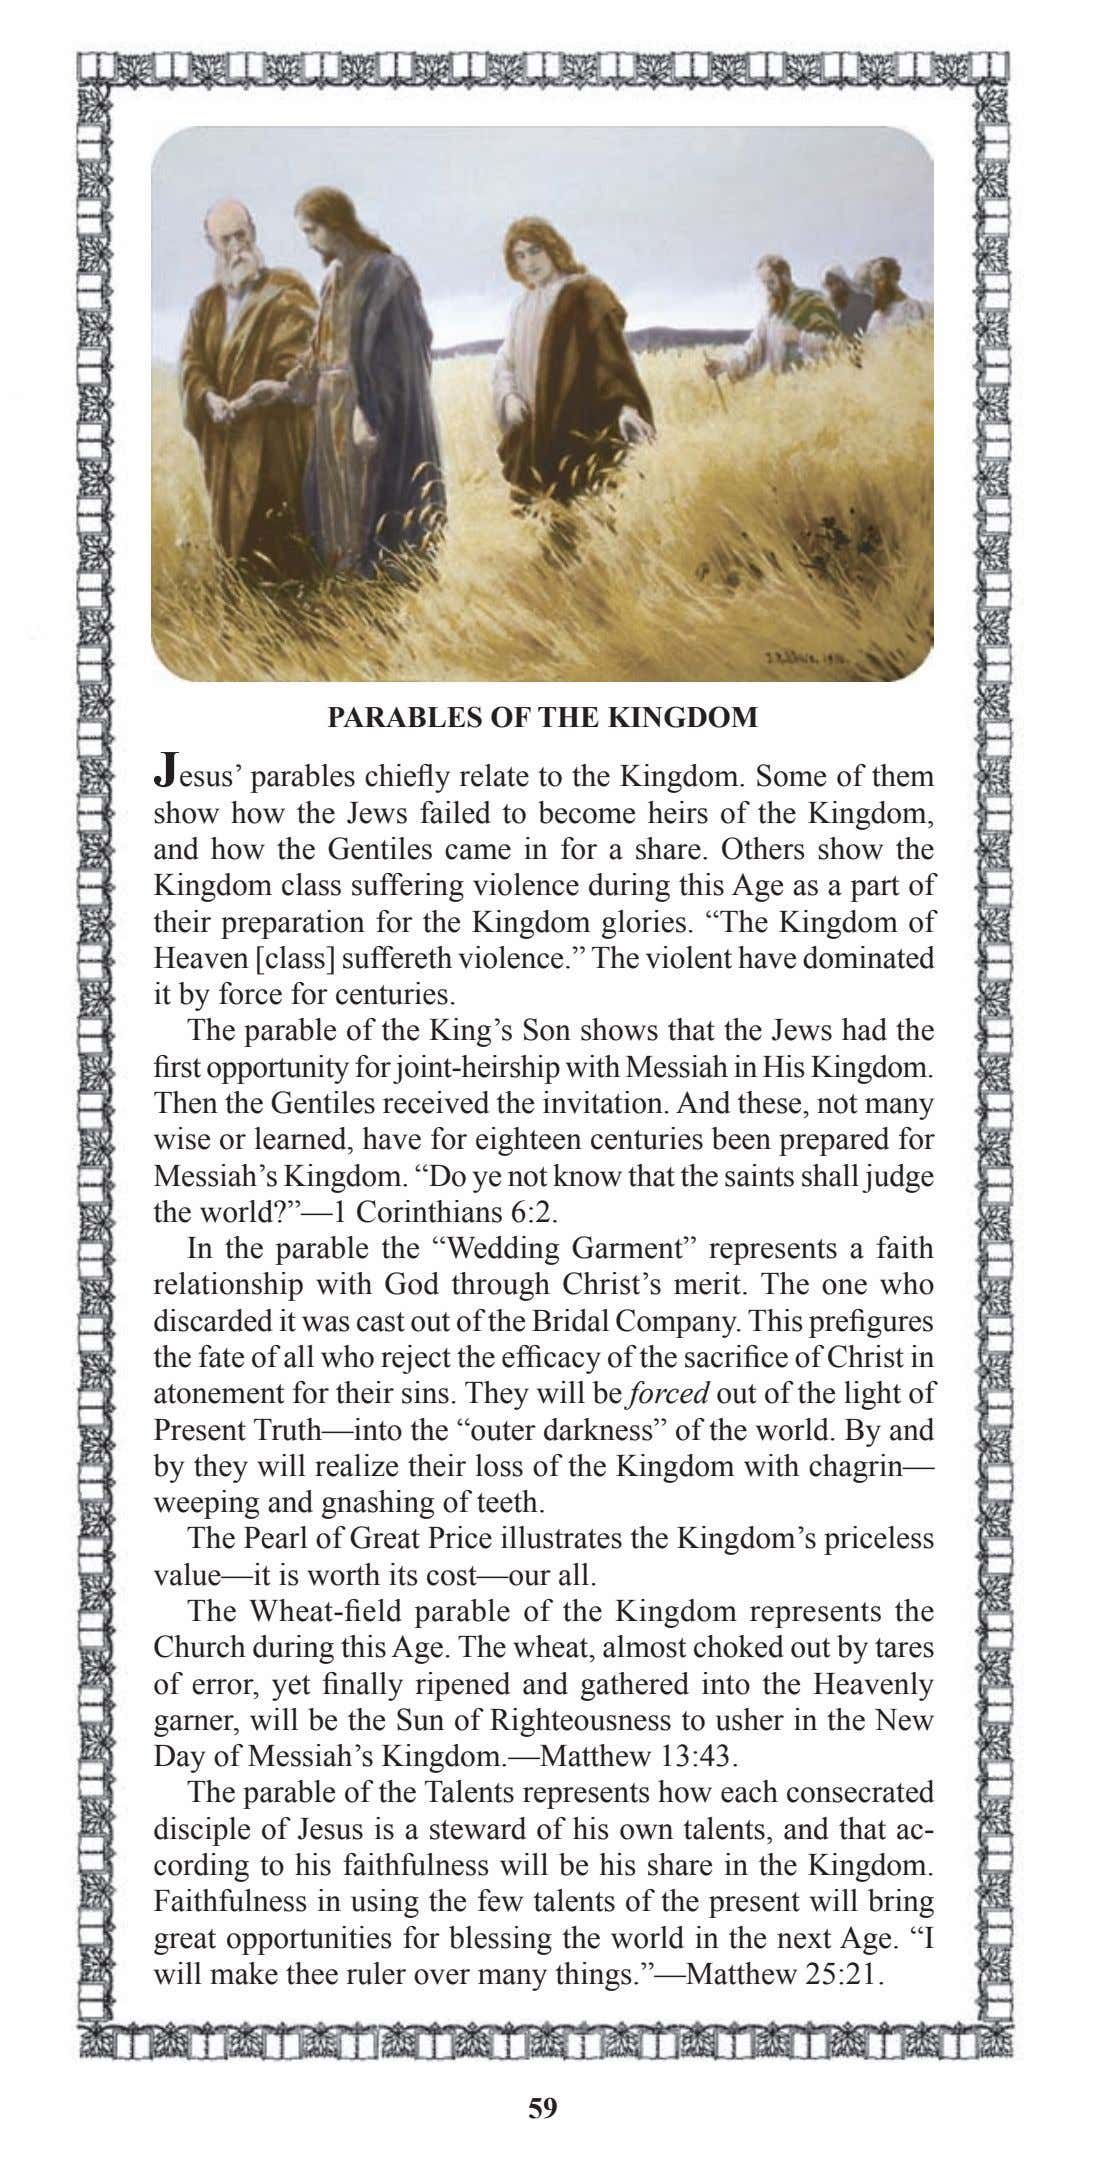 PARABLES OF THE KINGDOM Jesus' parables chiefly relate to the Kingdom. Some of them show